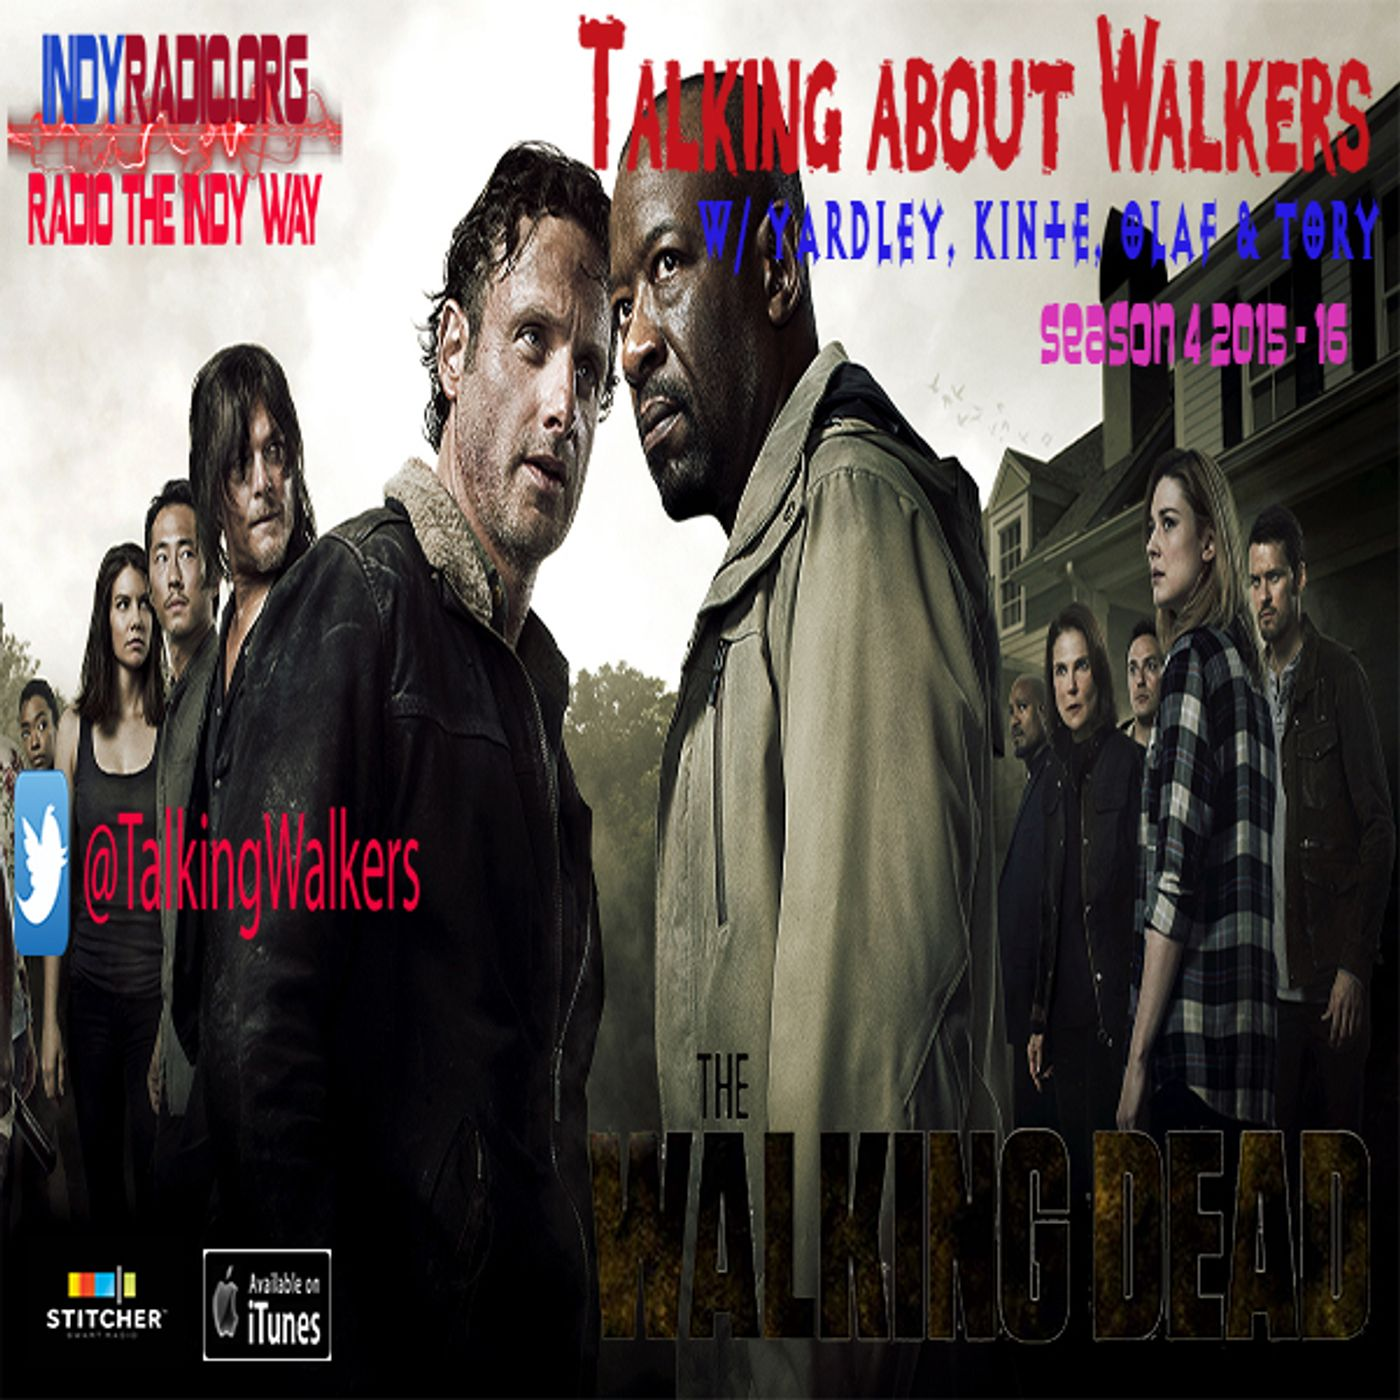 Walking Dead: Talking about Walkers